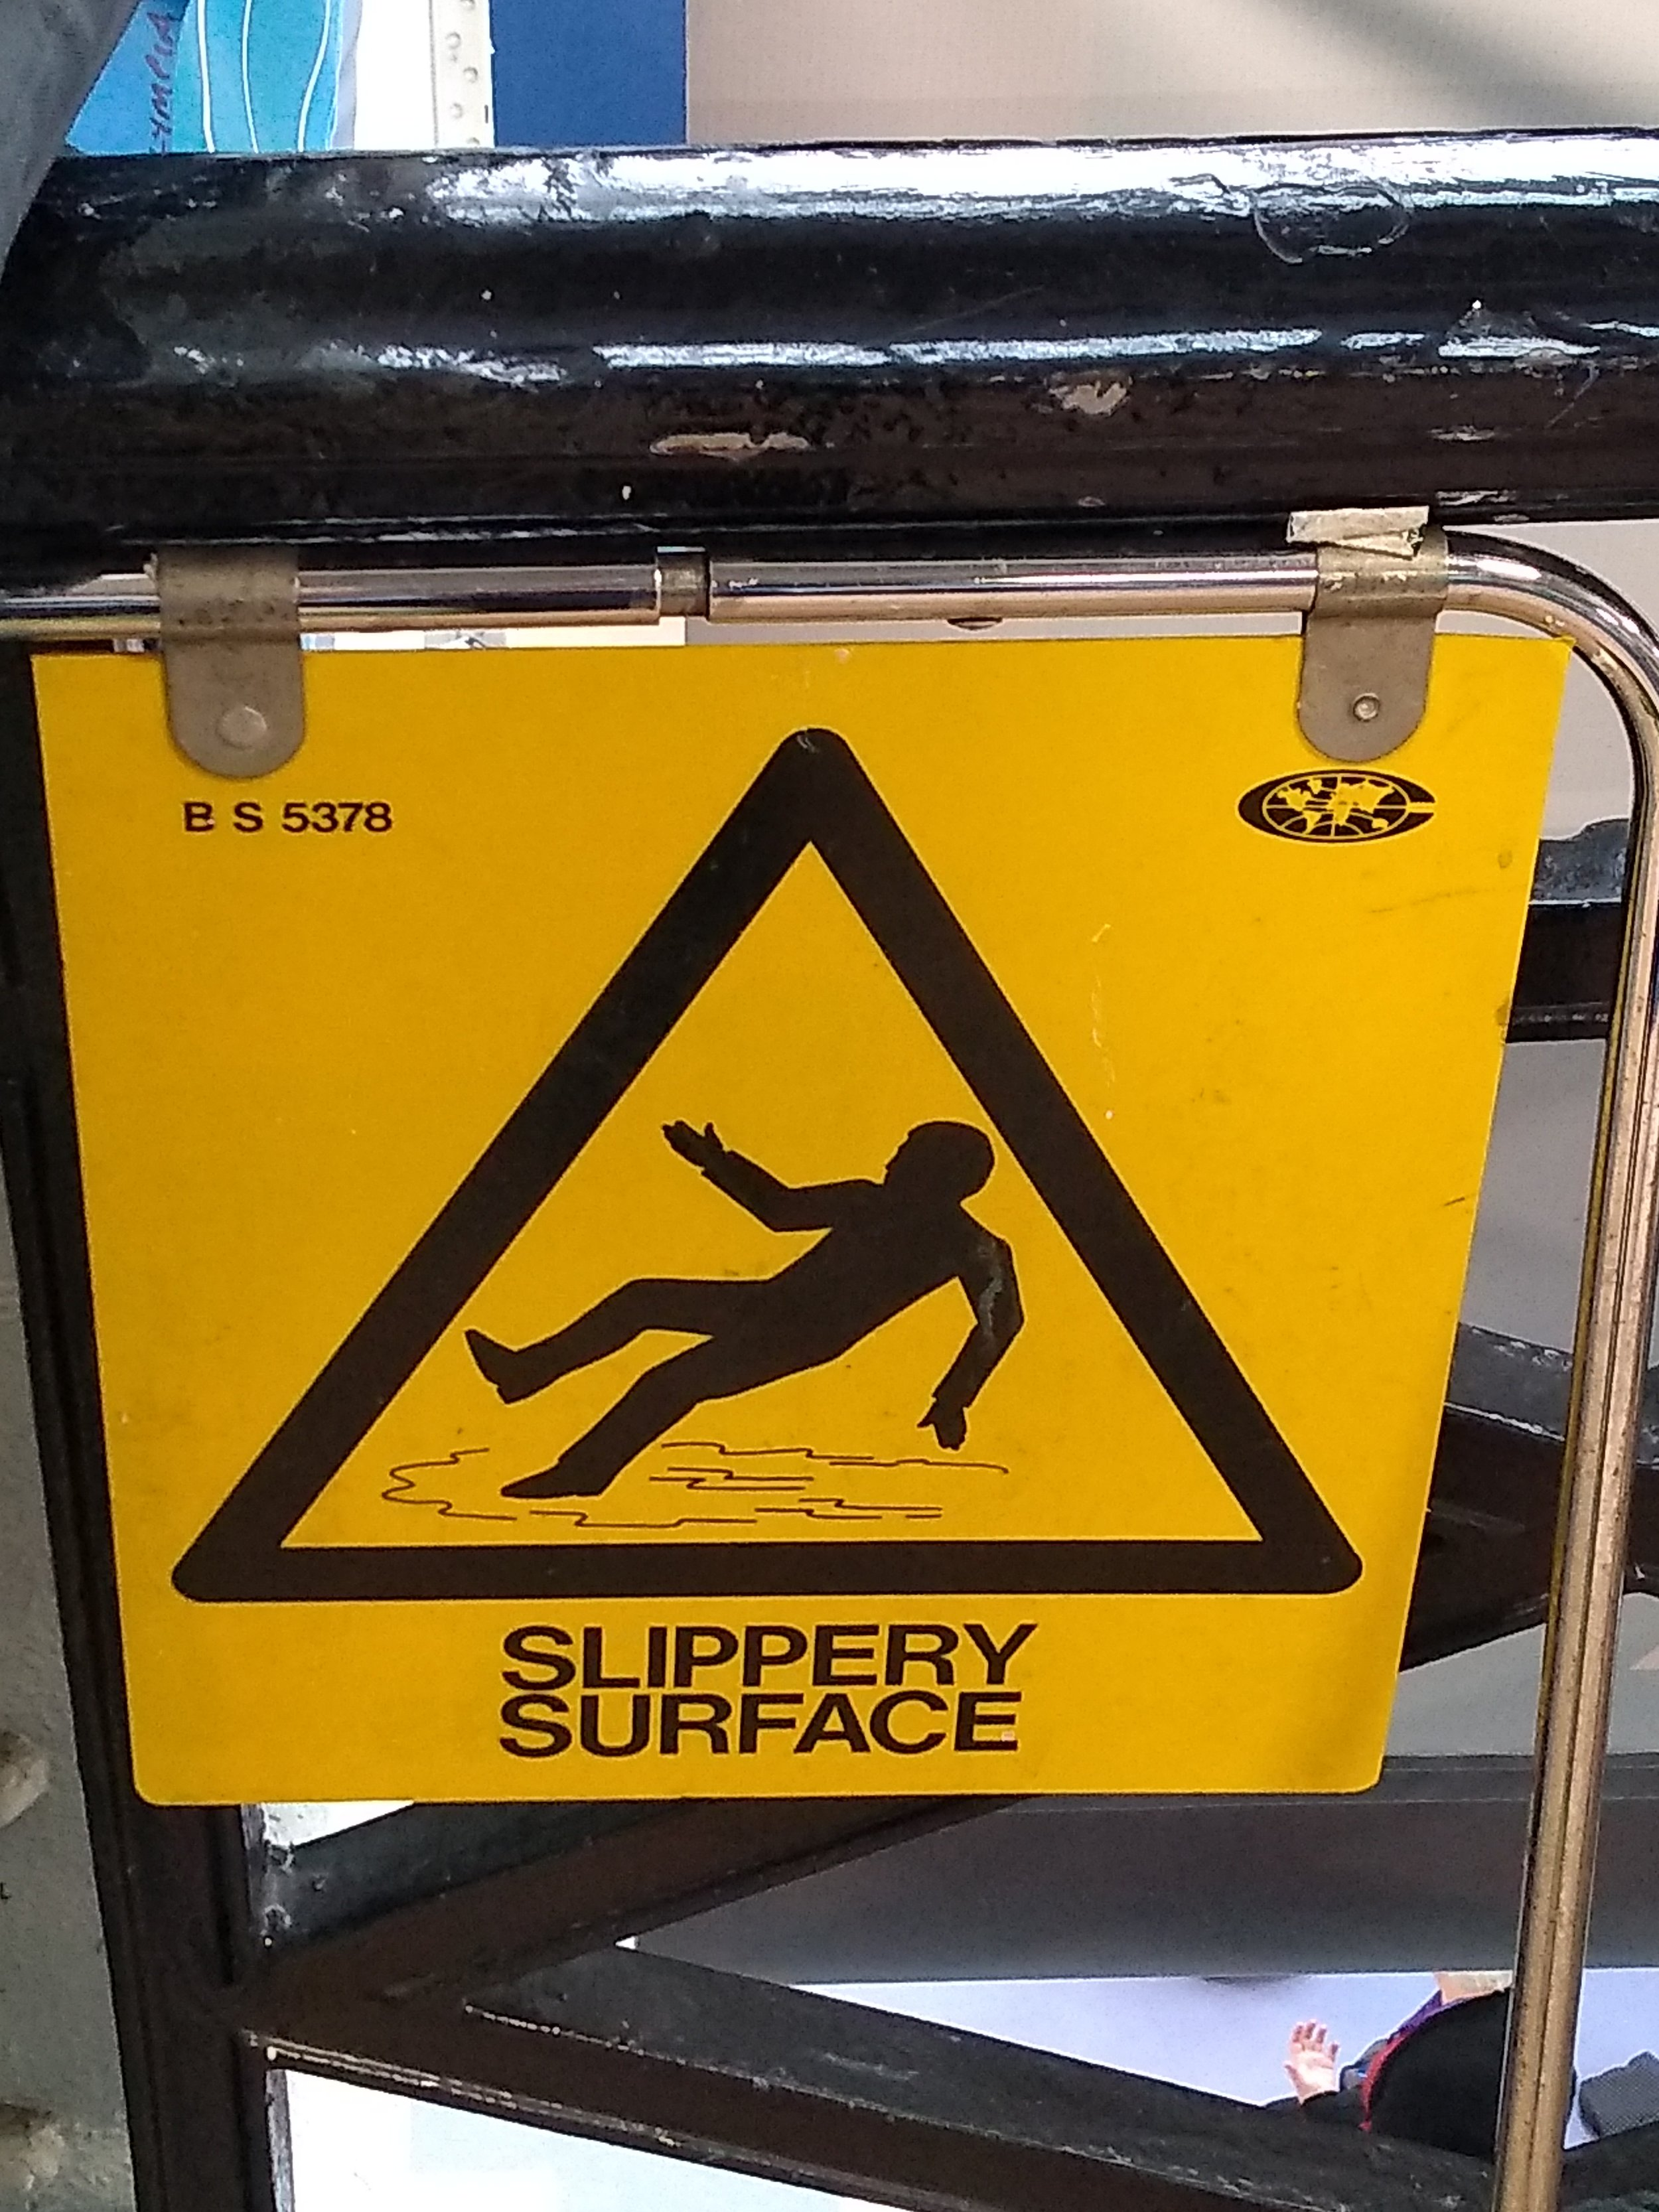 Slippery surface, by Terry Freedman